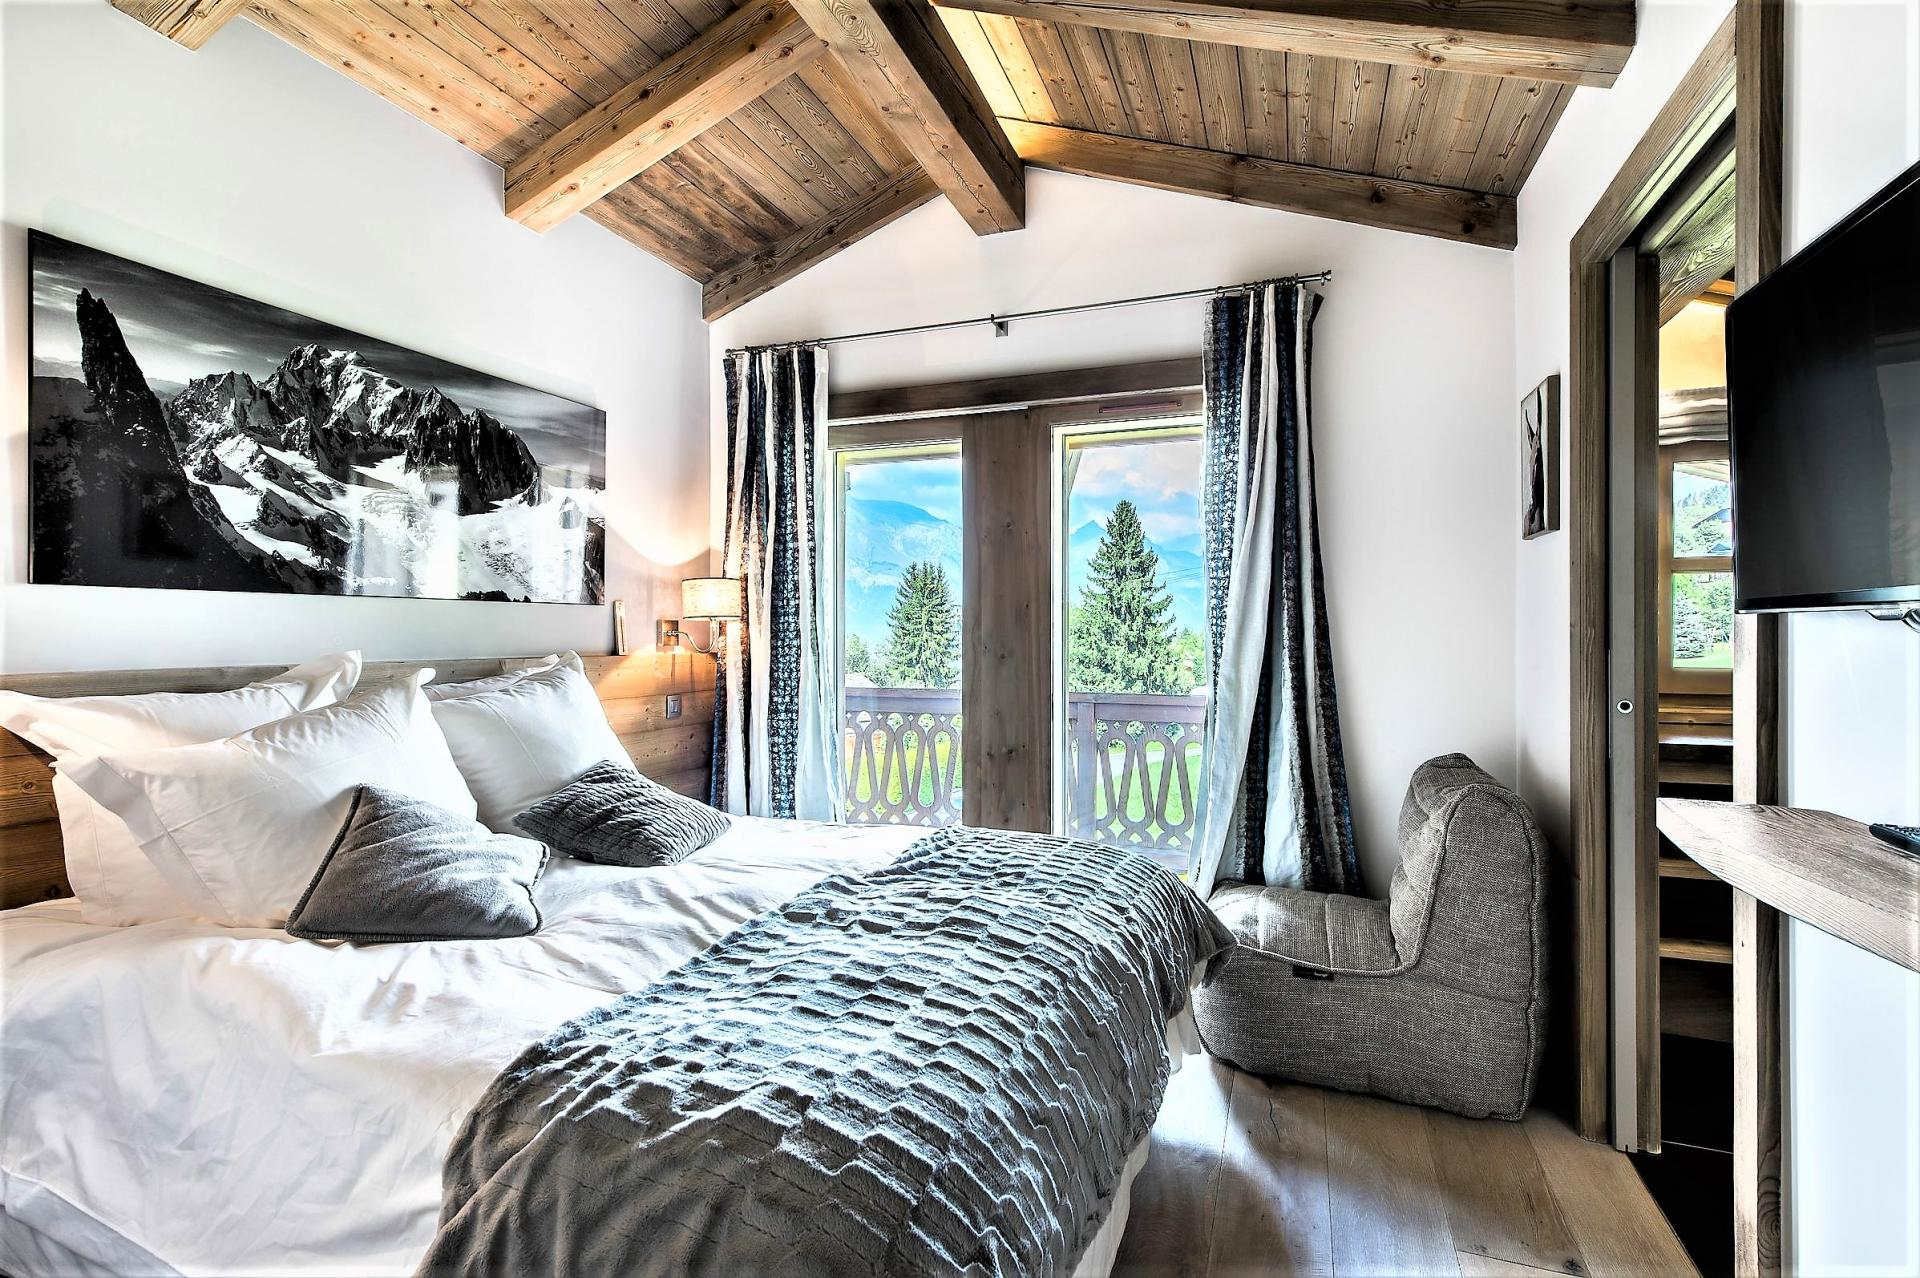 COMFORTABLE AND COSY BEDROOM IN CHALET DES ARAVIS